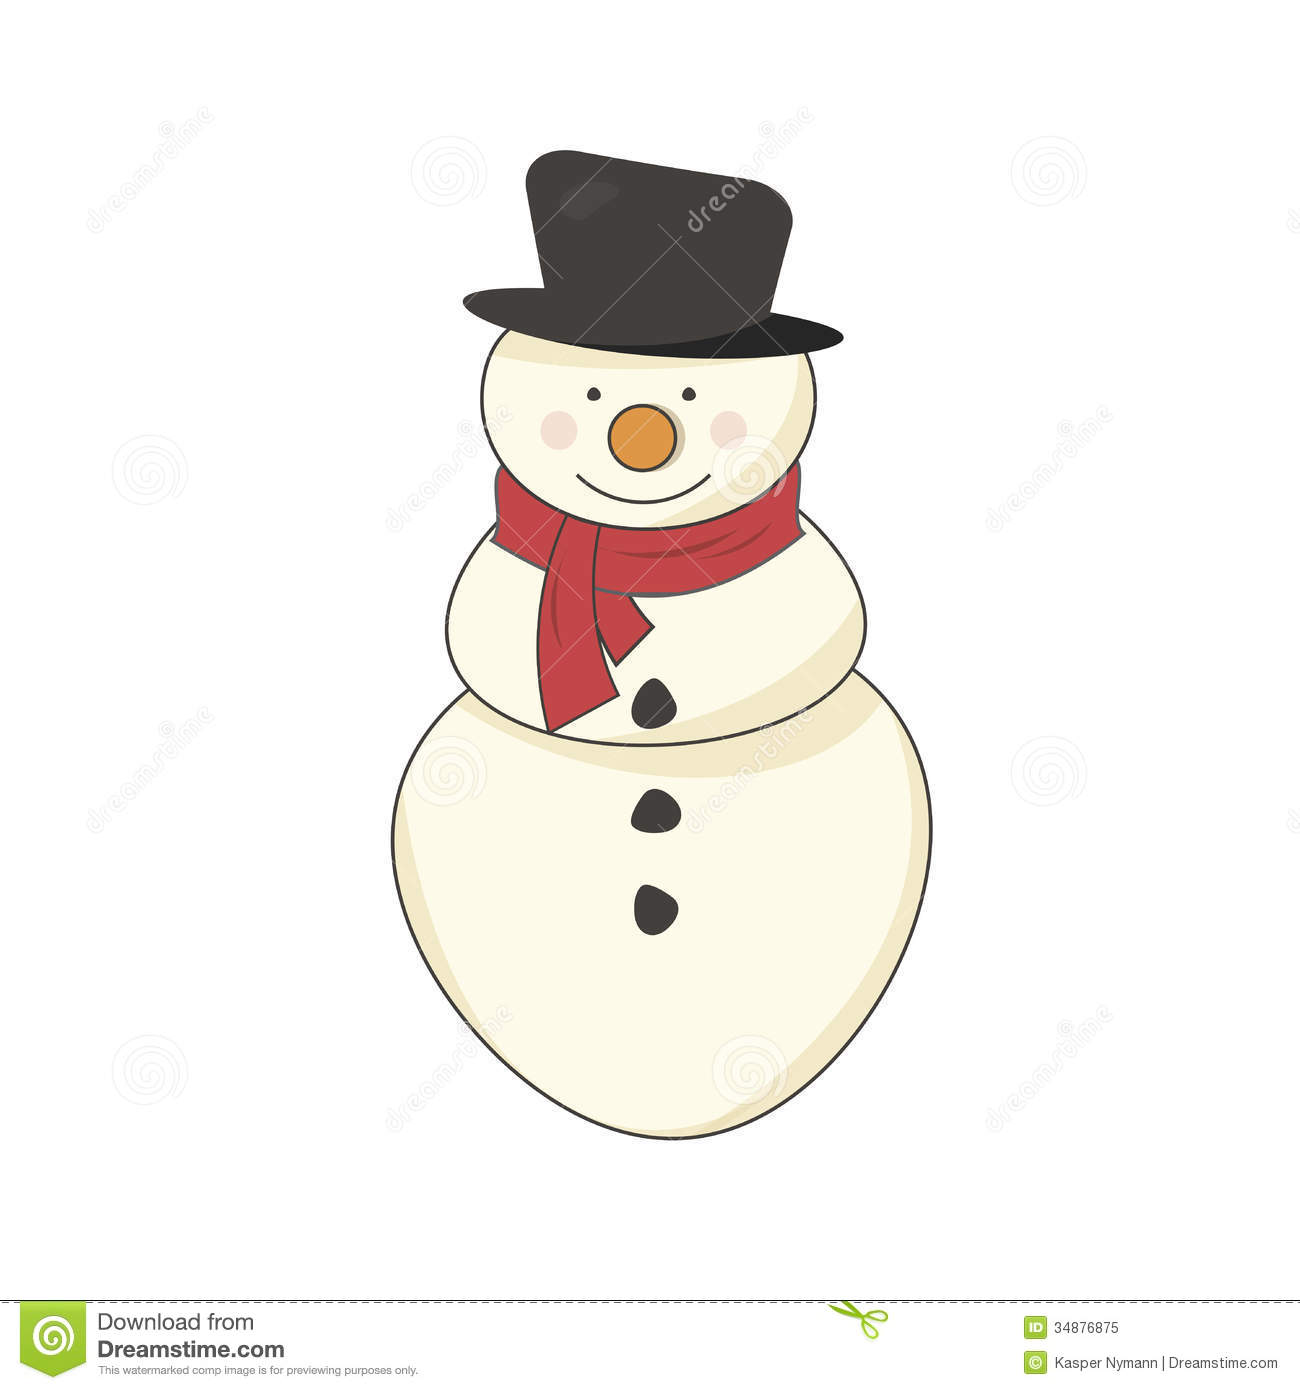 Illustration Decoration Snowman With A Scarf Royalty Free Stock Photo - Image